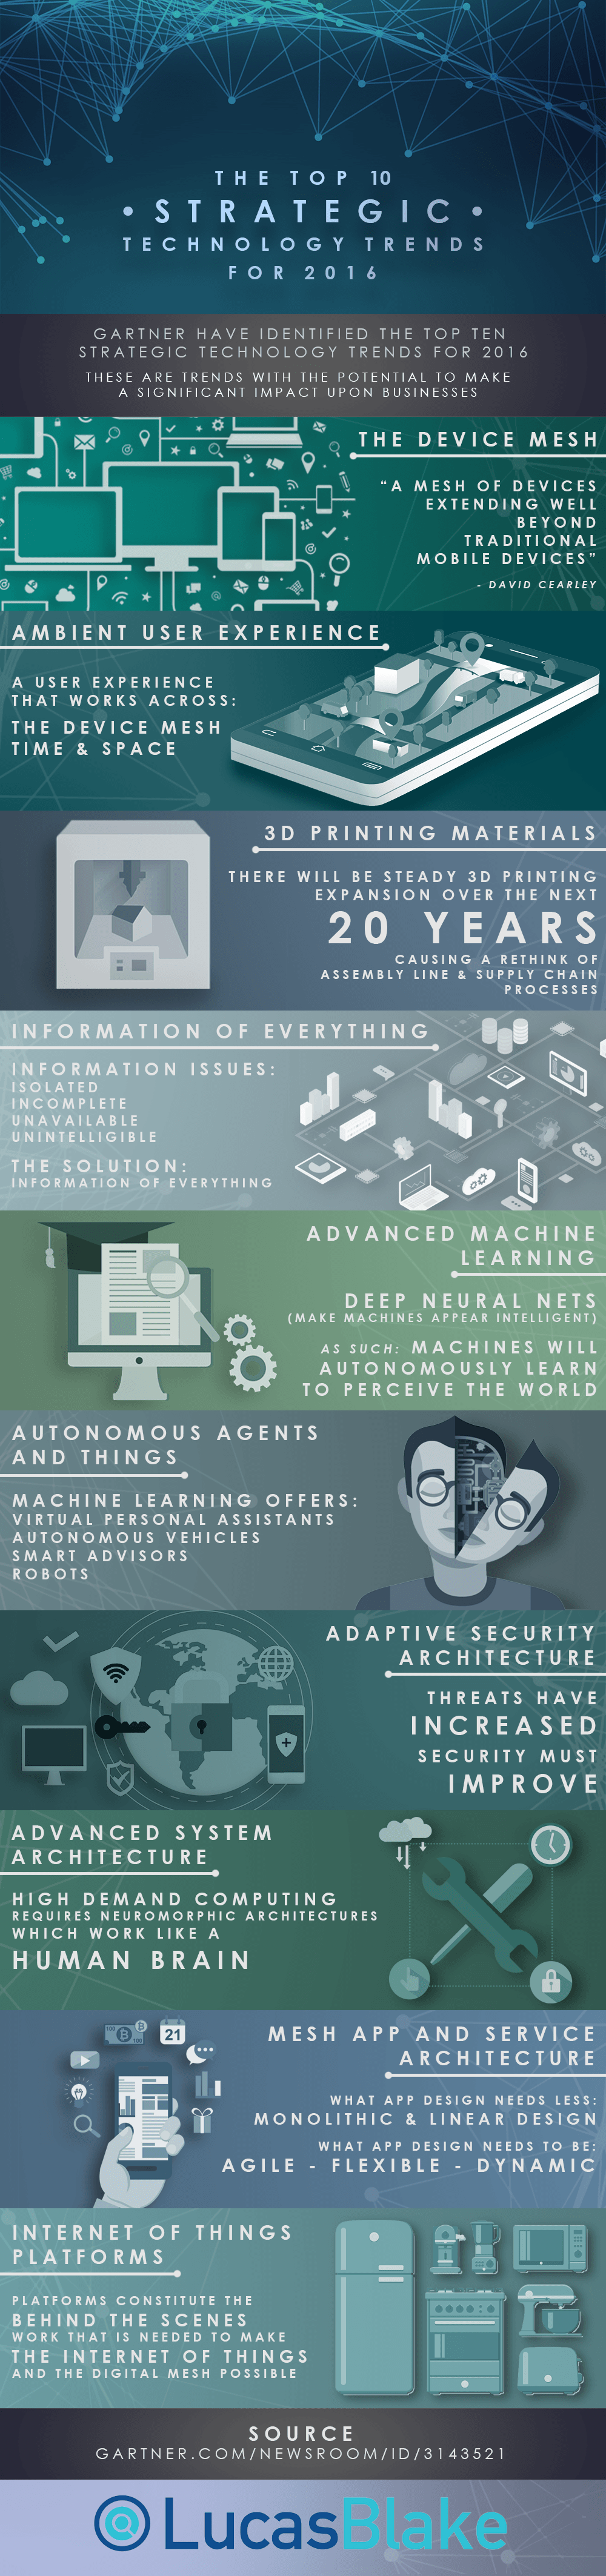 The Top 10 Strategic Tech Trends